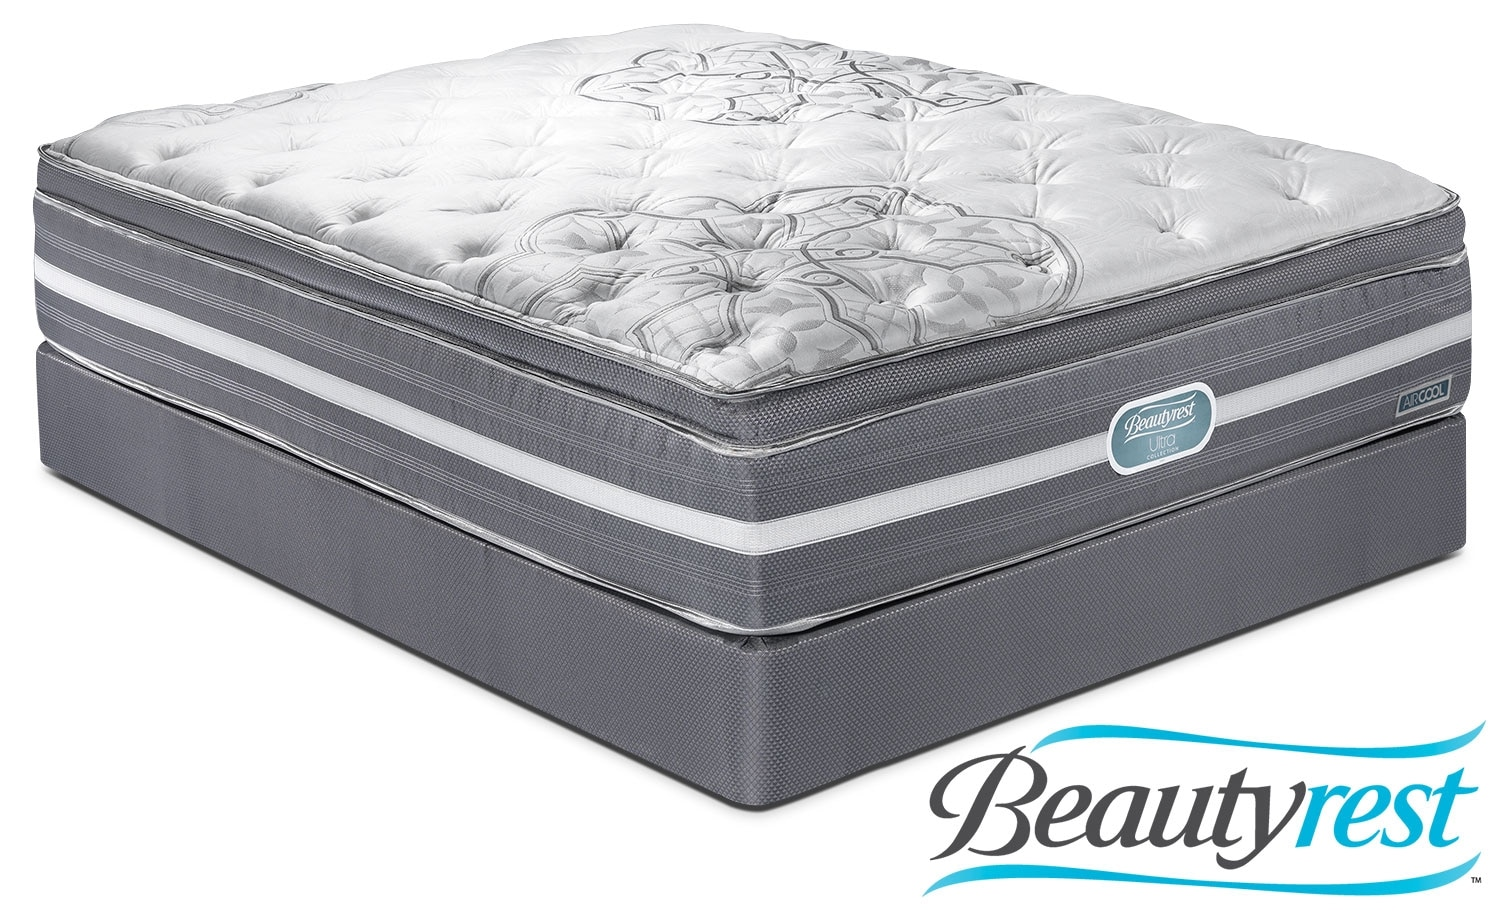 Mattresses and Bedding - Simmons Grand Luxe Plush Twin Mattress/Boxspring Set